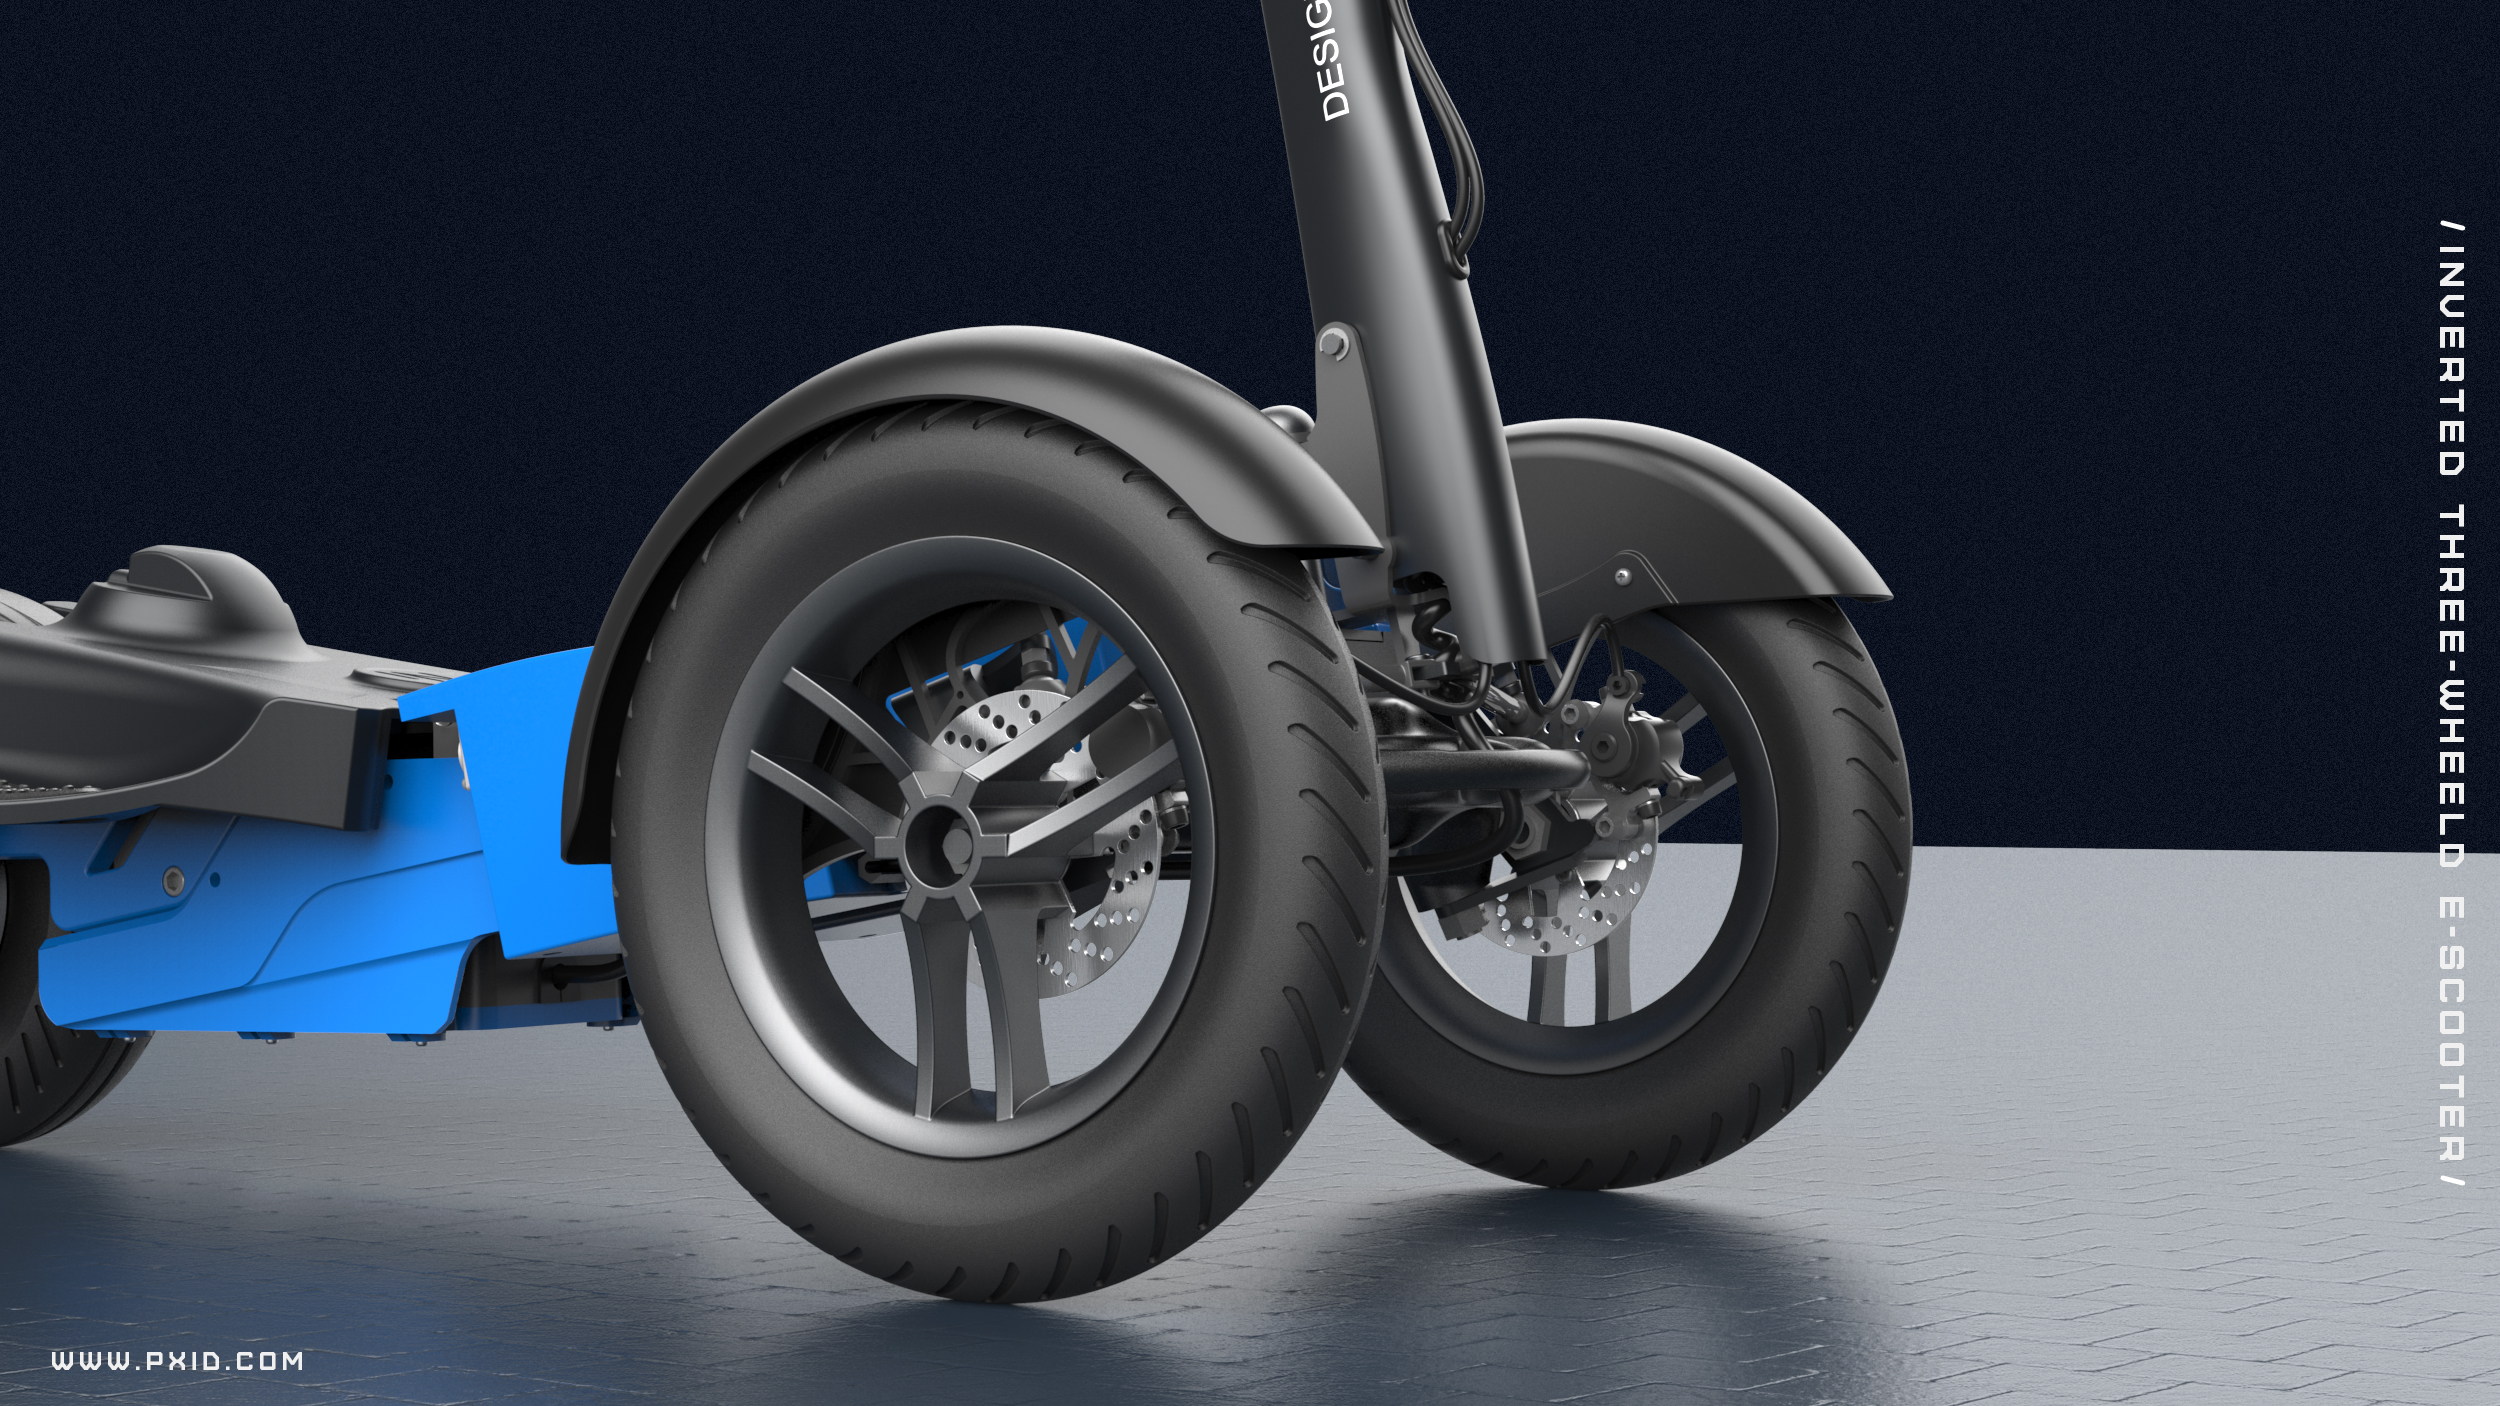 PXID new inverted three-wheeled electric scooter design